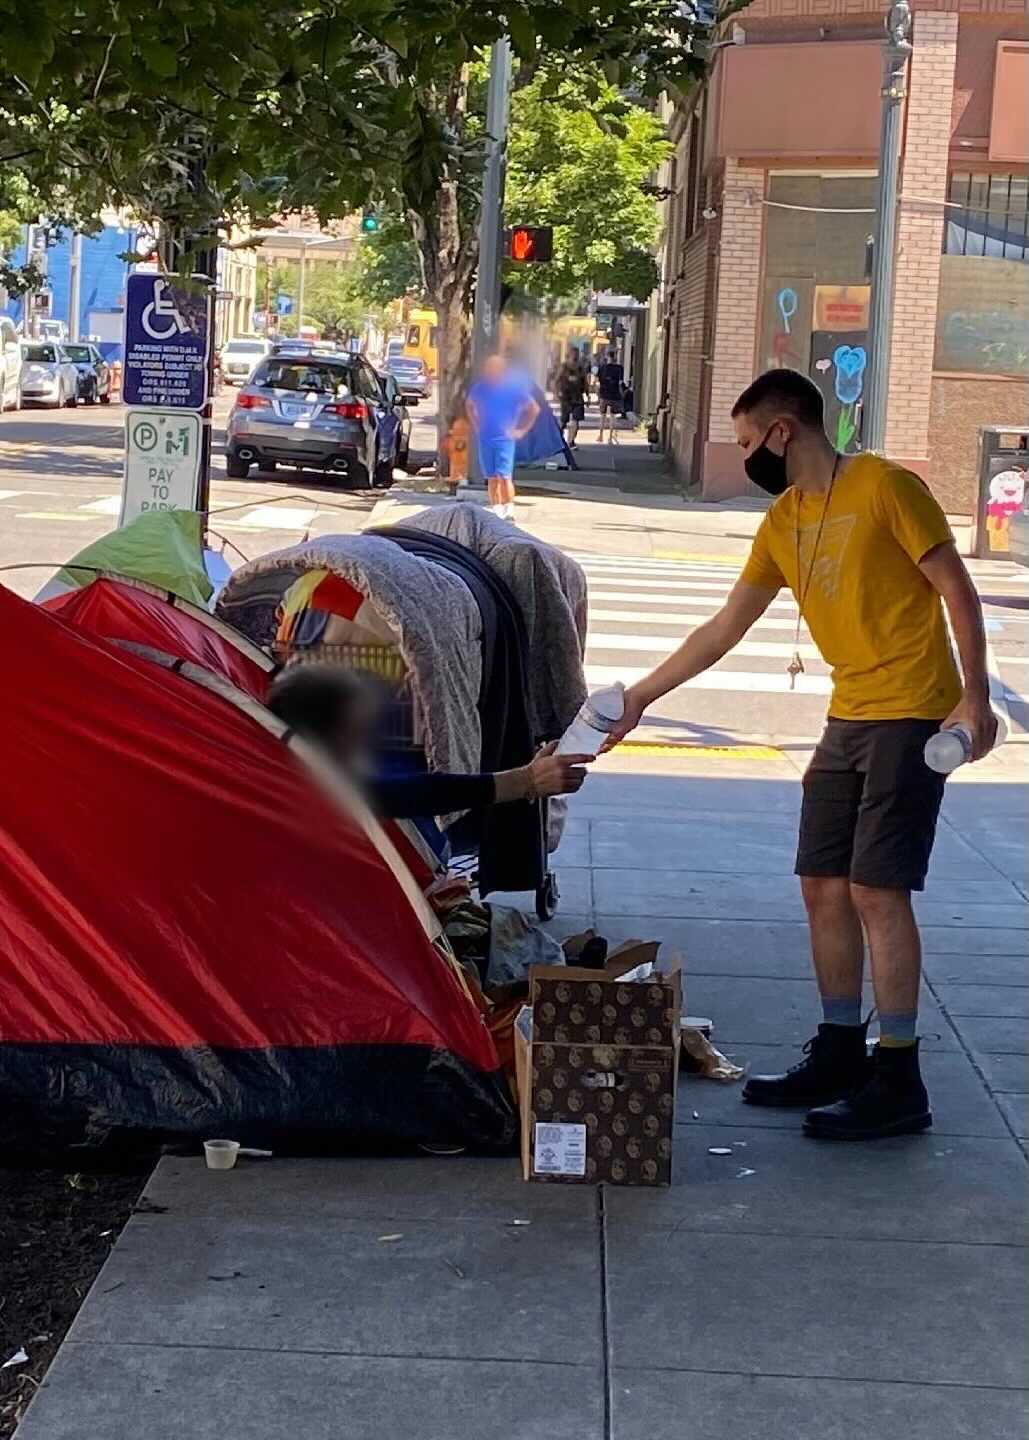 a person in a yellow shirt hands a bottle of frosty water to a person in a red tent on the streets of portland